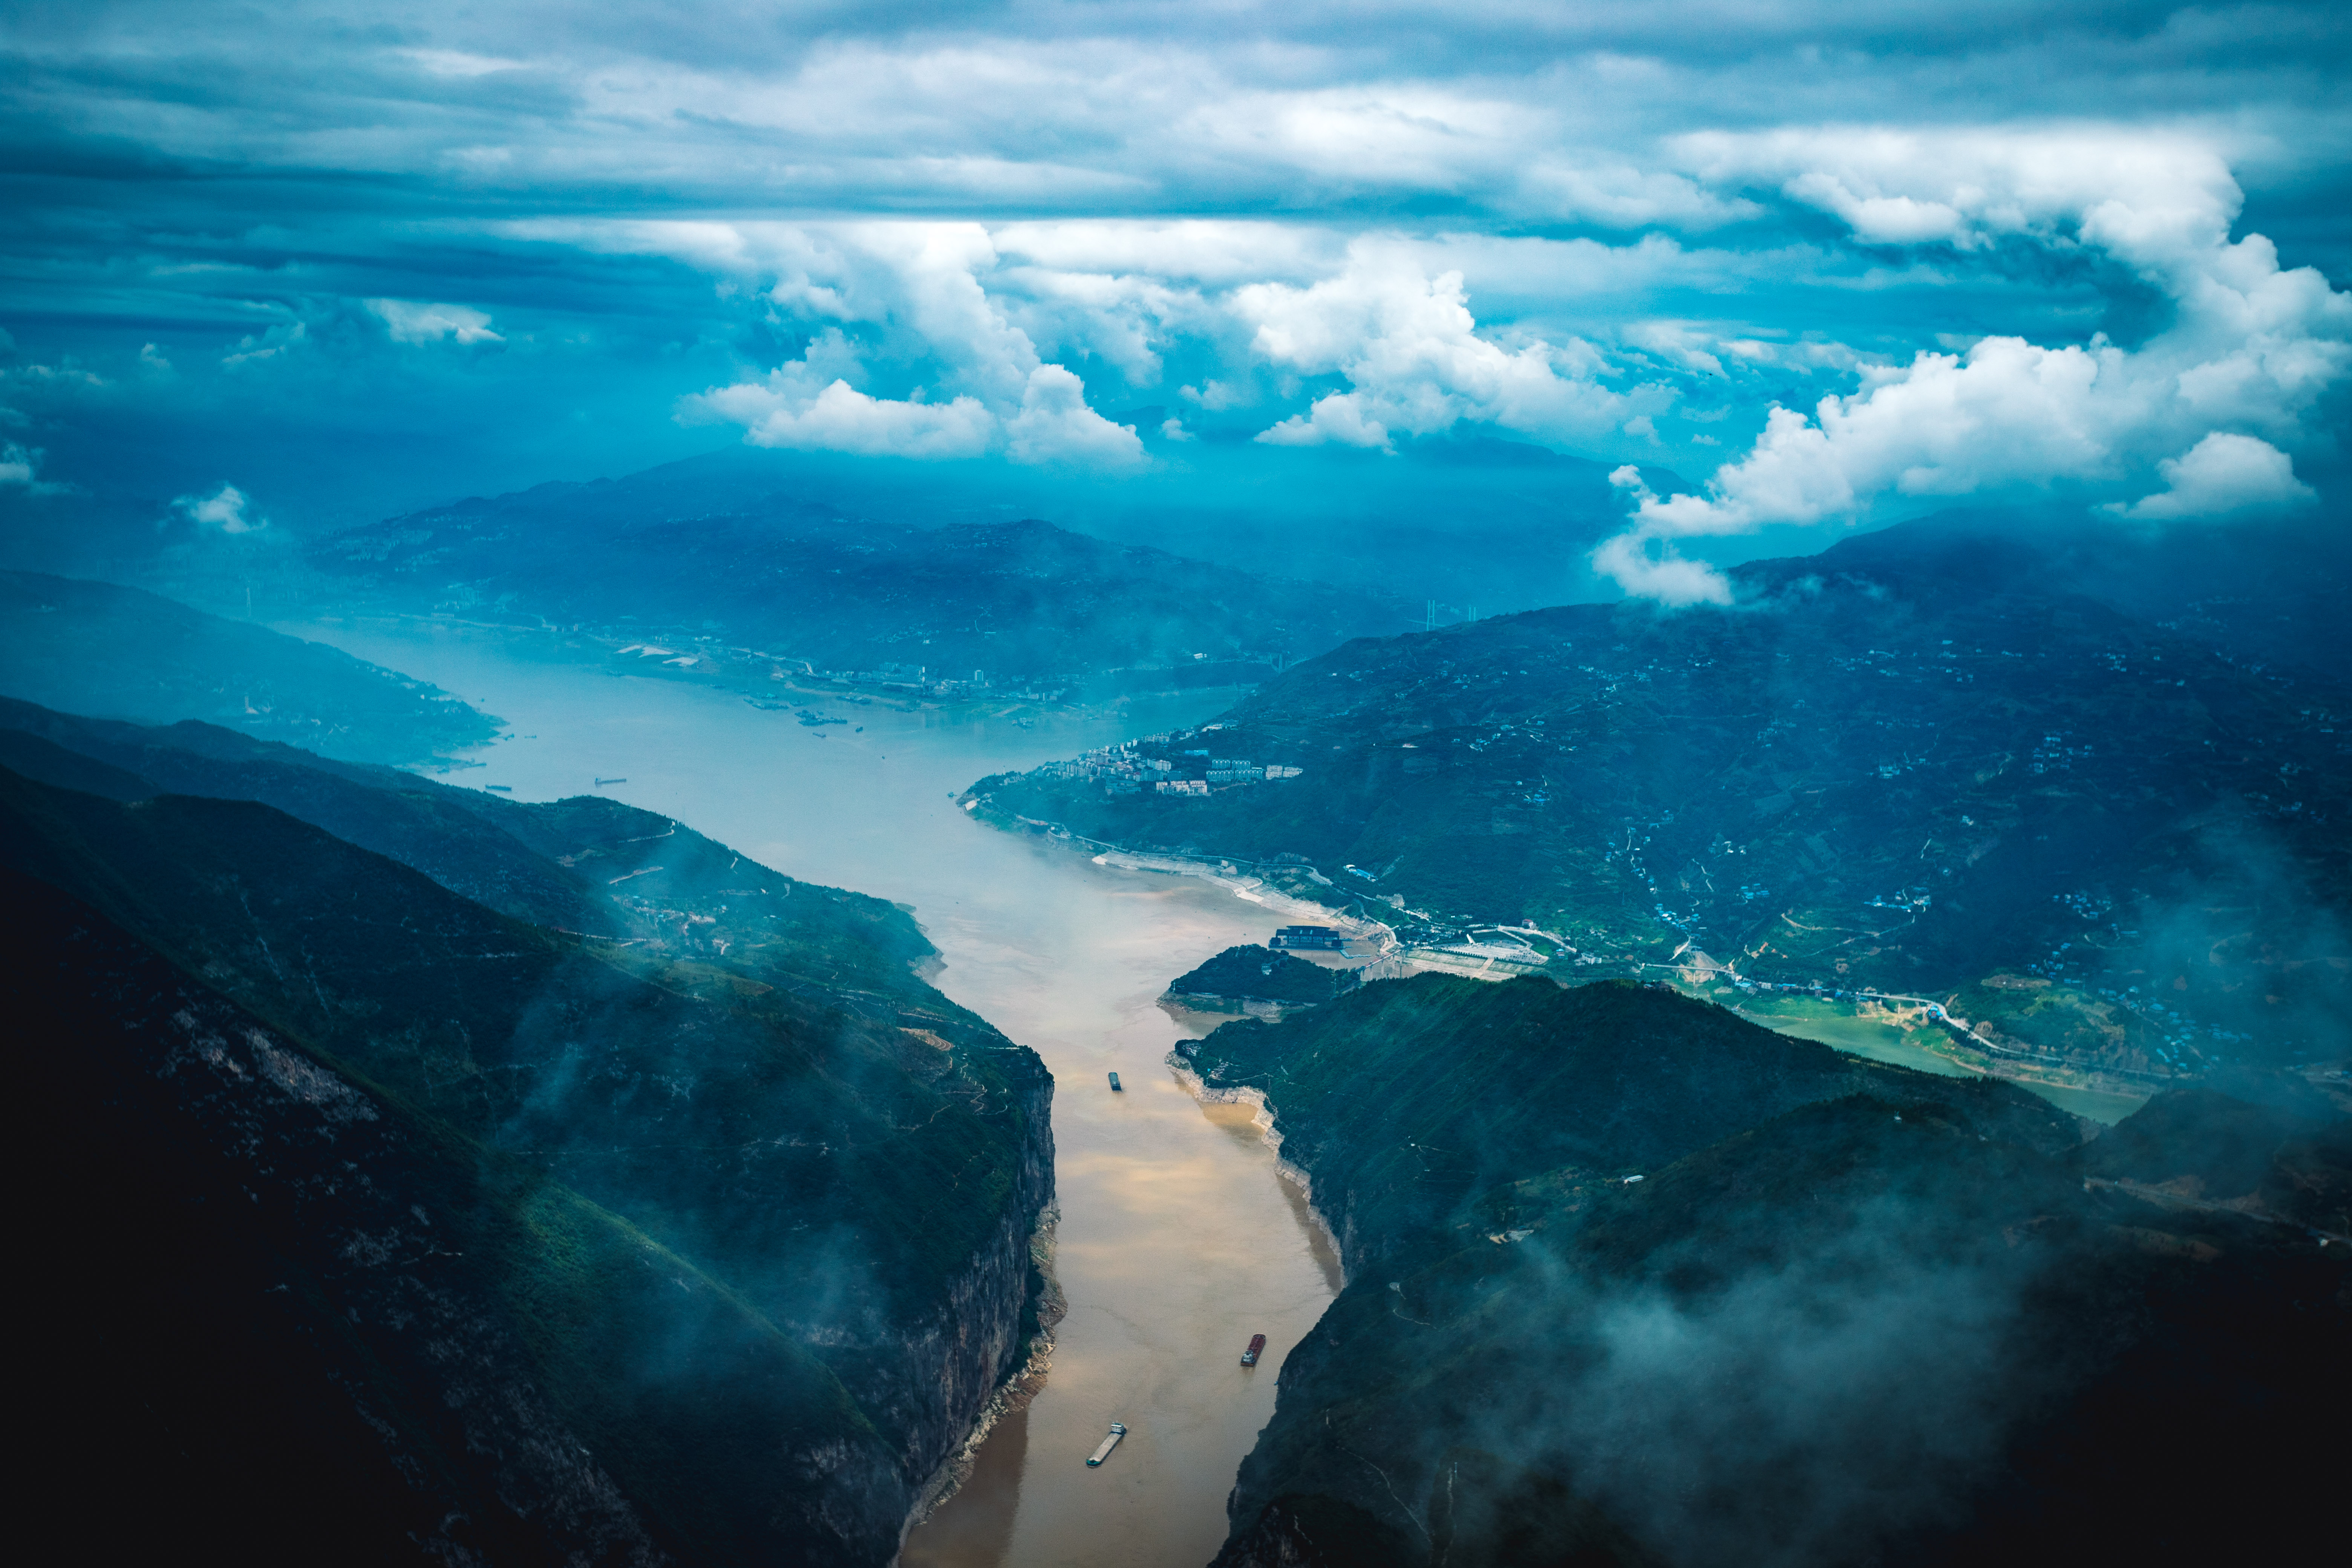 View from the observation deck on the Peak of the Three Gorges